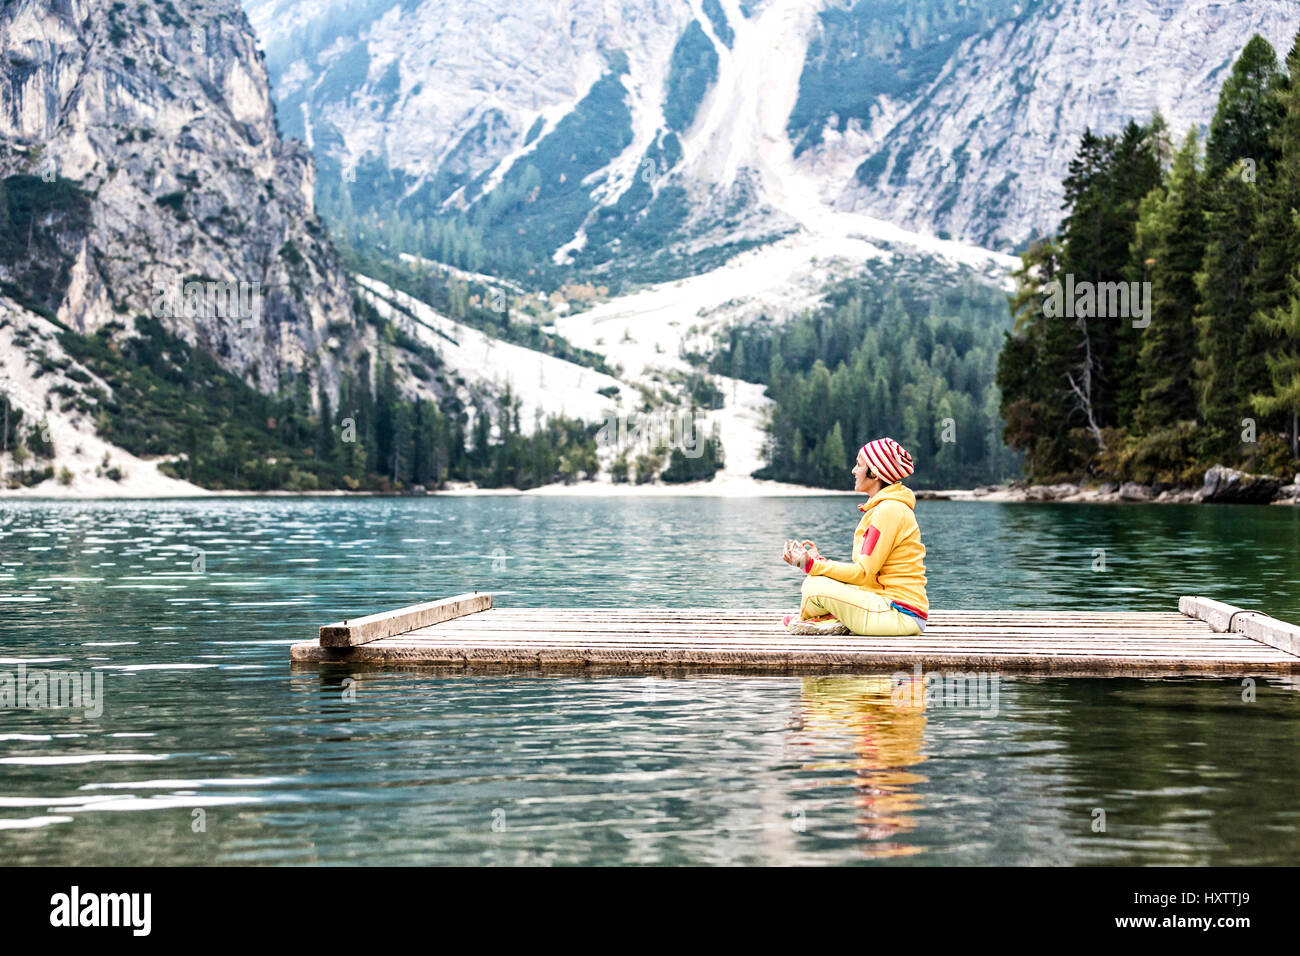 Yoga at the lake, lago di braies, Dolomites - Stock Image